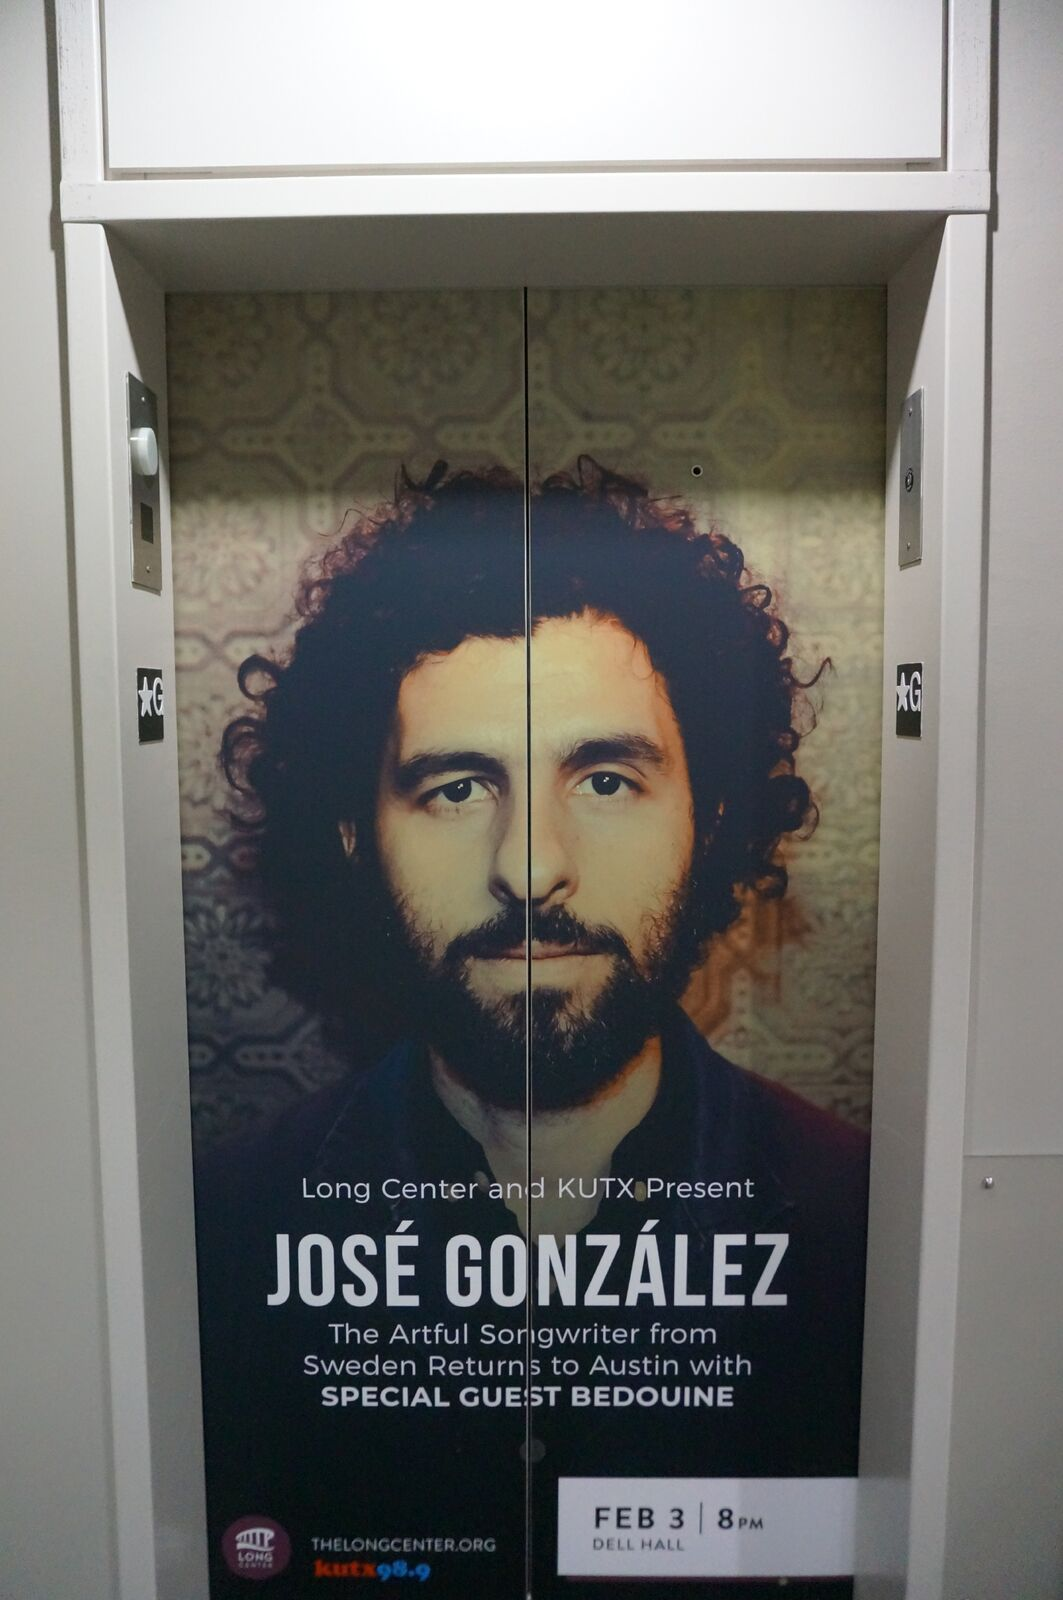 Jose Gonzalez returns to Austin February 3rd at the Long Center,